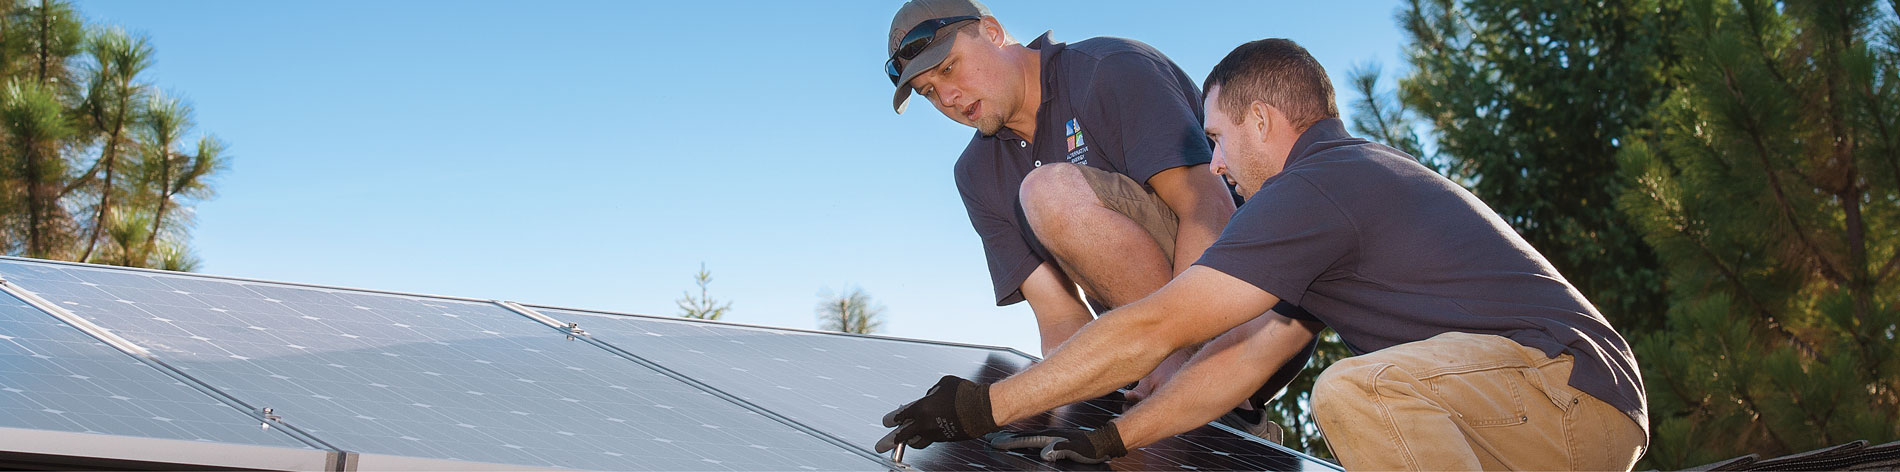 Grid Tied Solar Energy in Southern Oregon